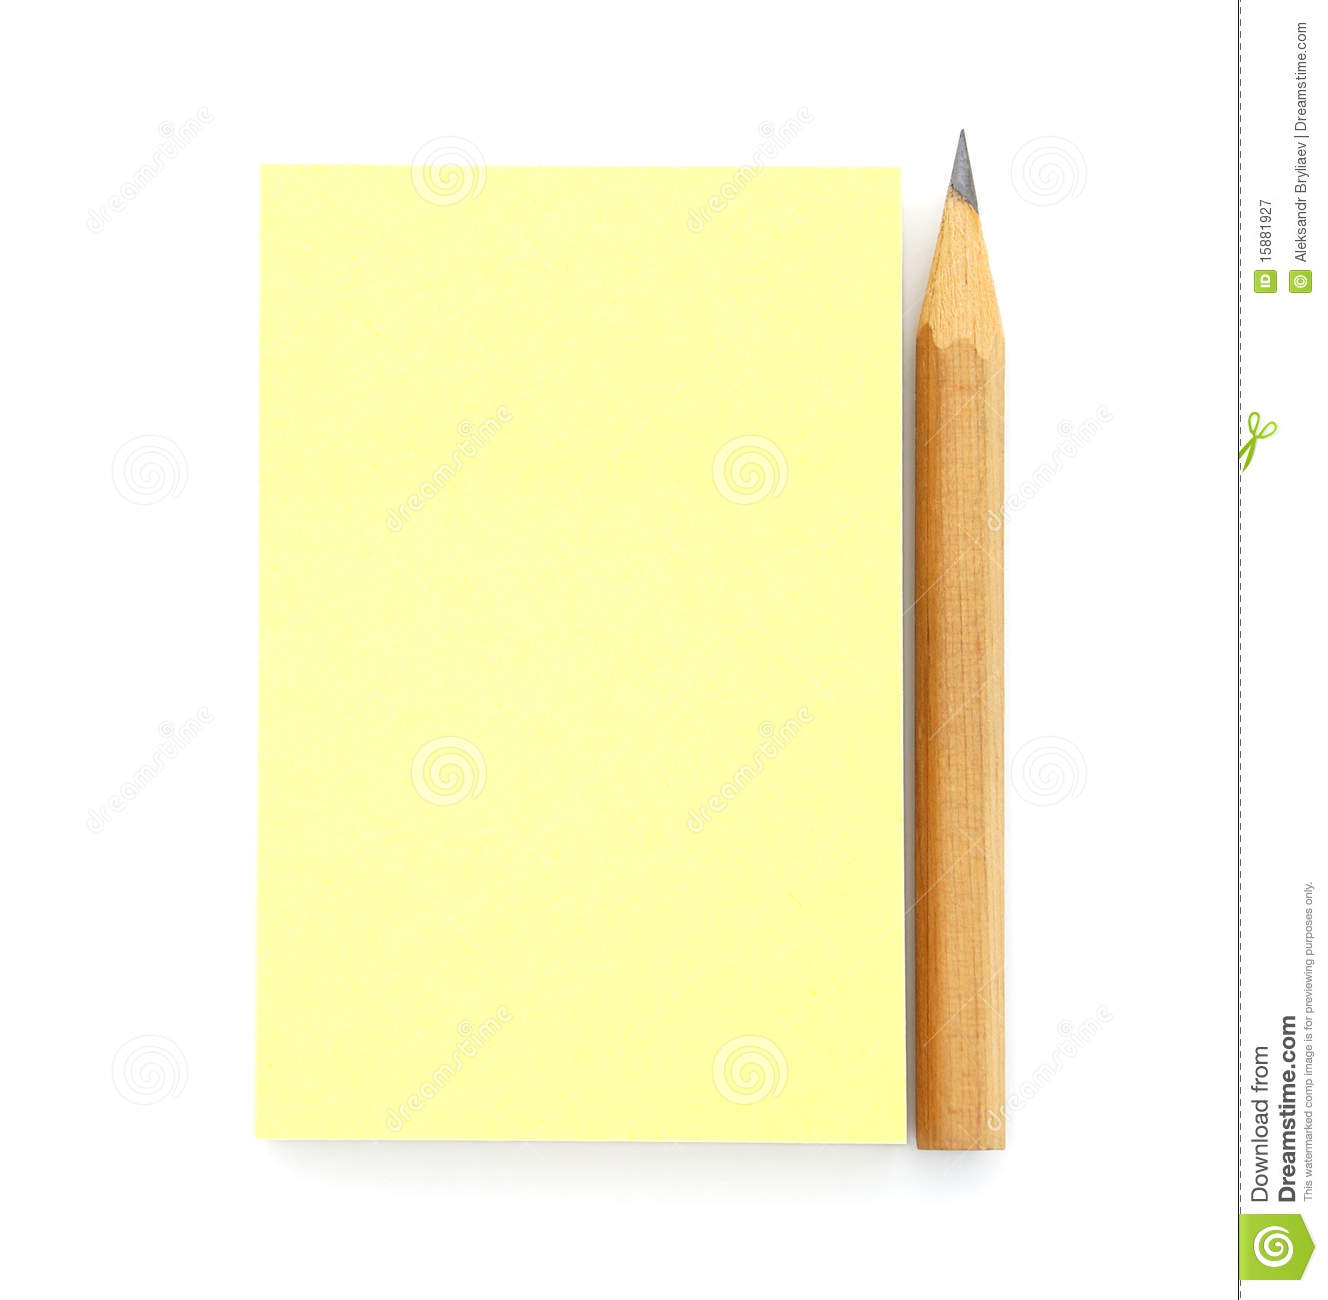 Blank Yellow Post-it Note Royalty Free Stock Photography